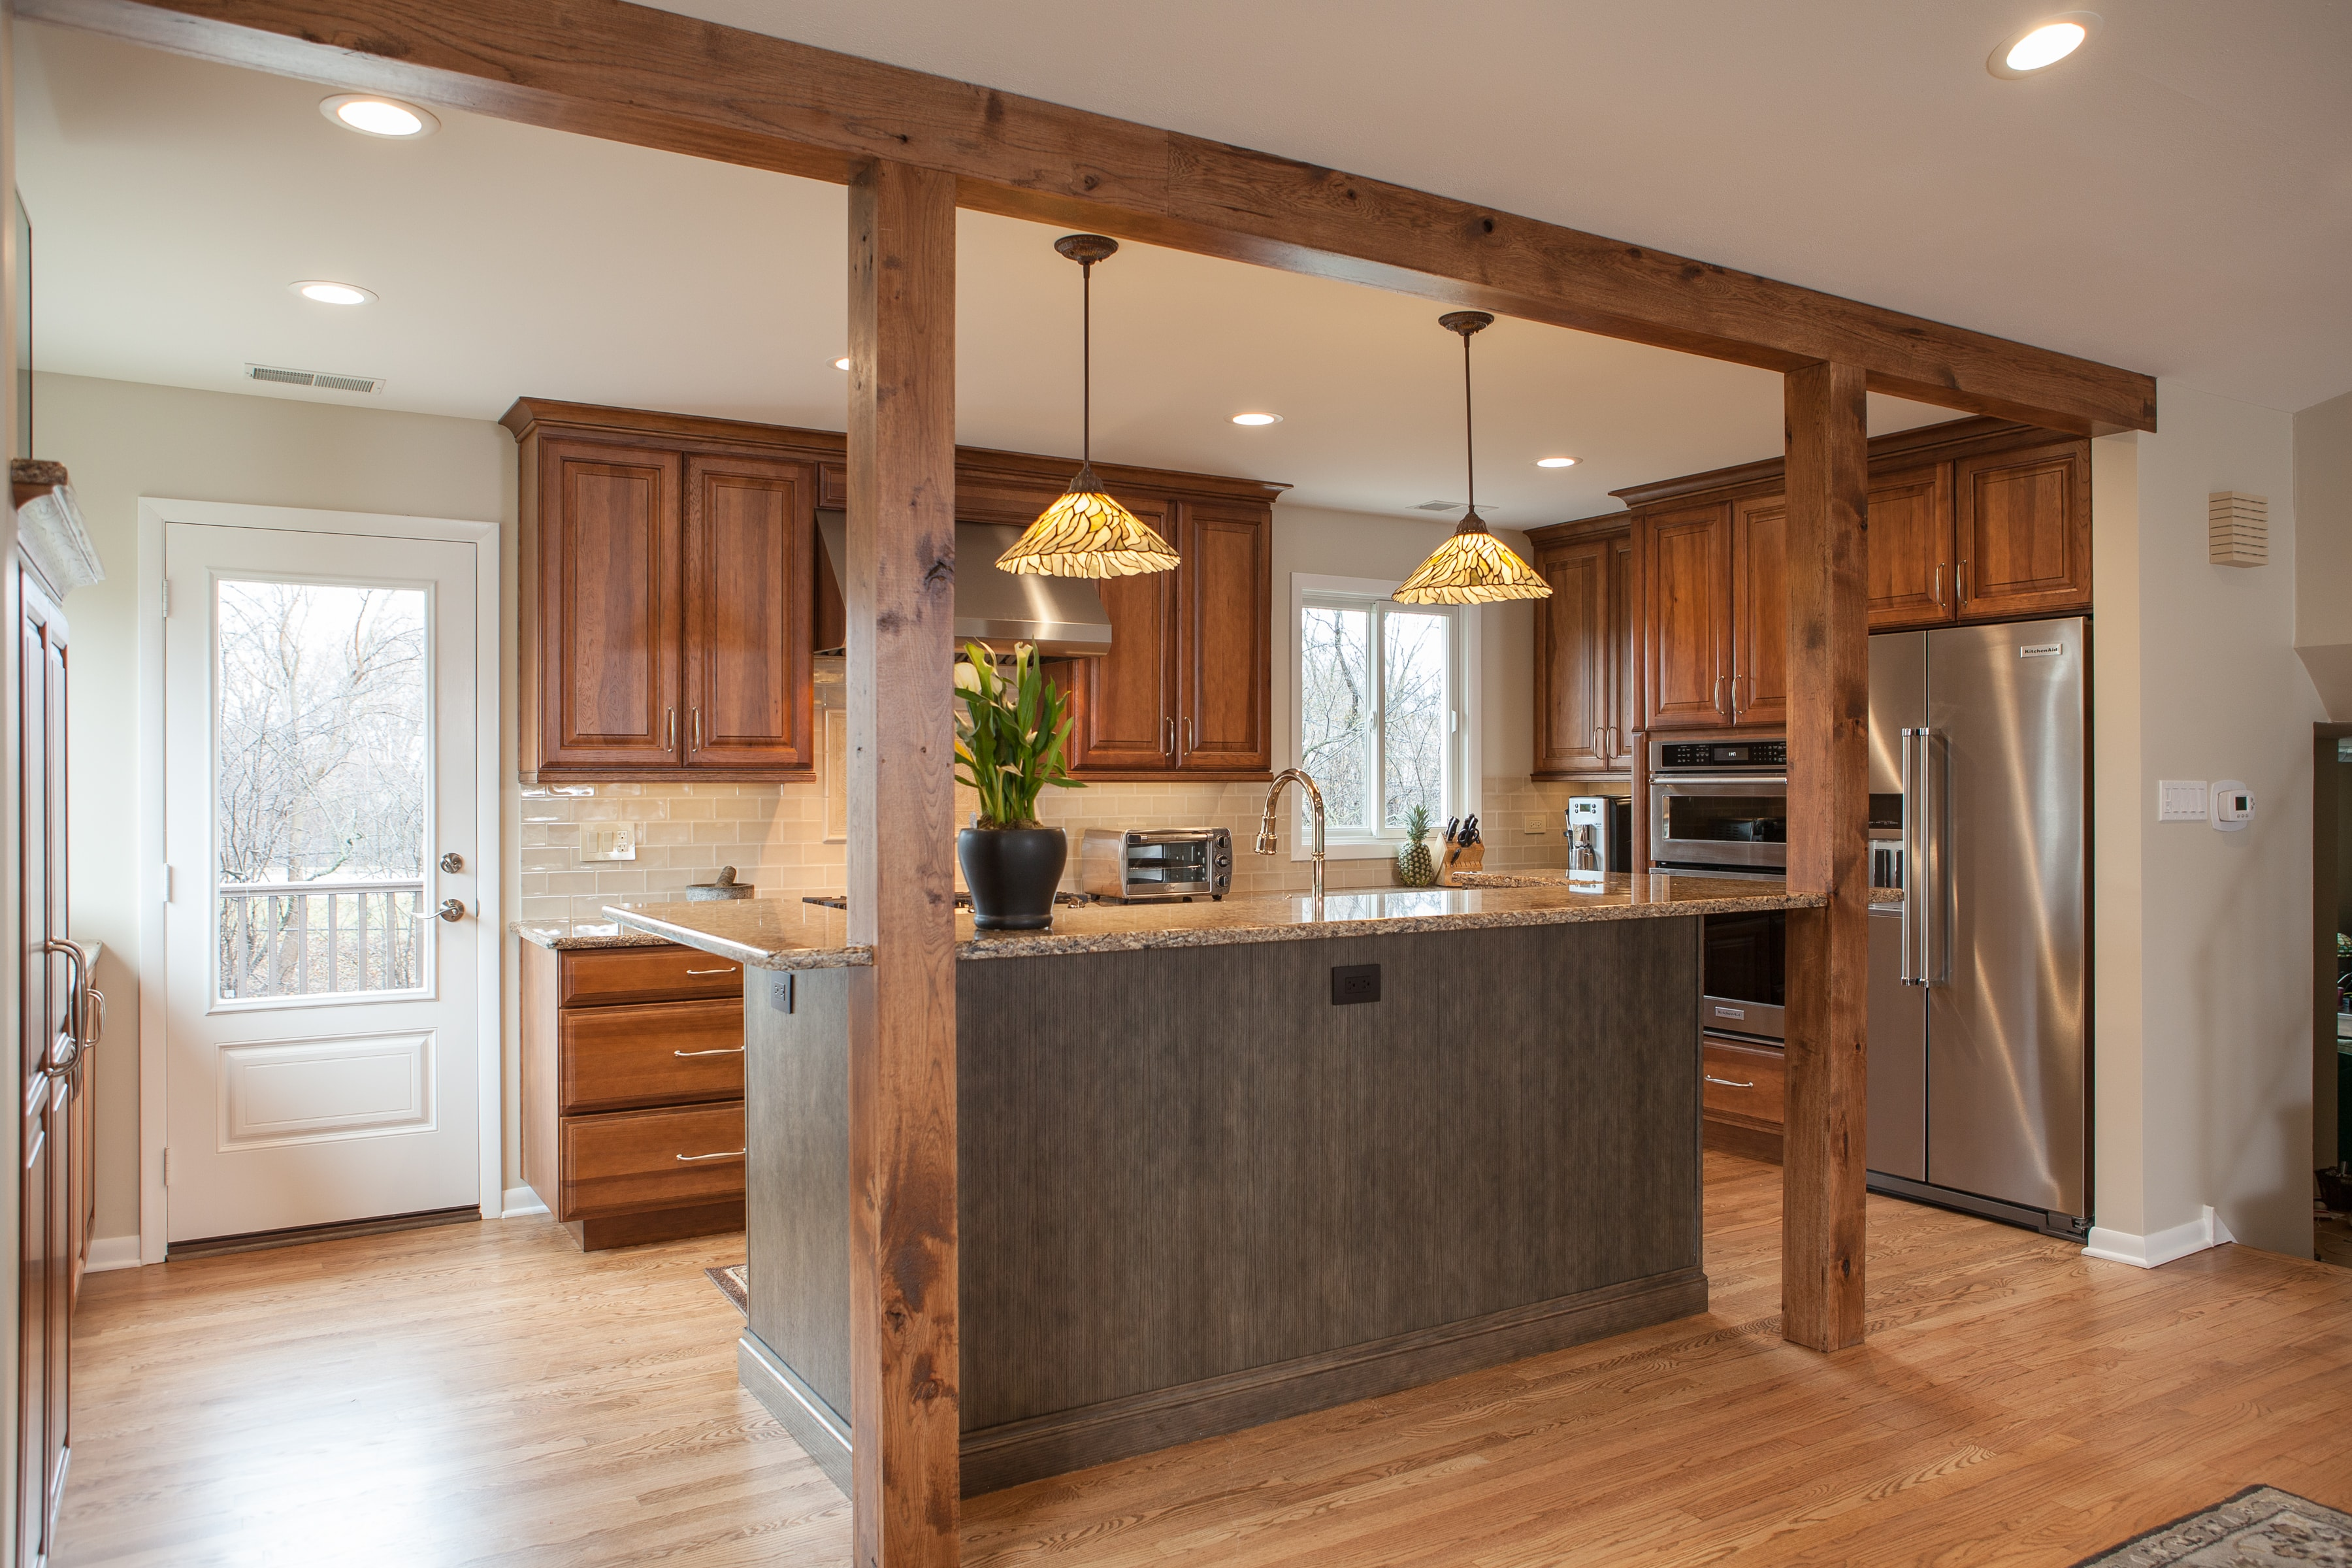 Home Remodeling Company Chicago North Shore Bds Design Build Remodel